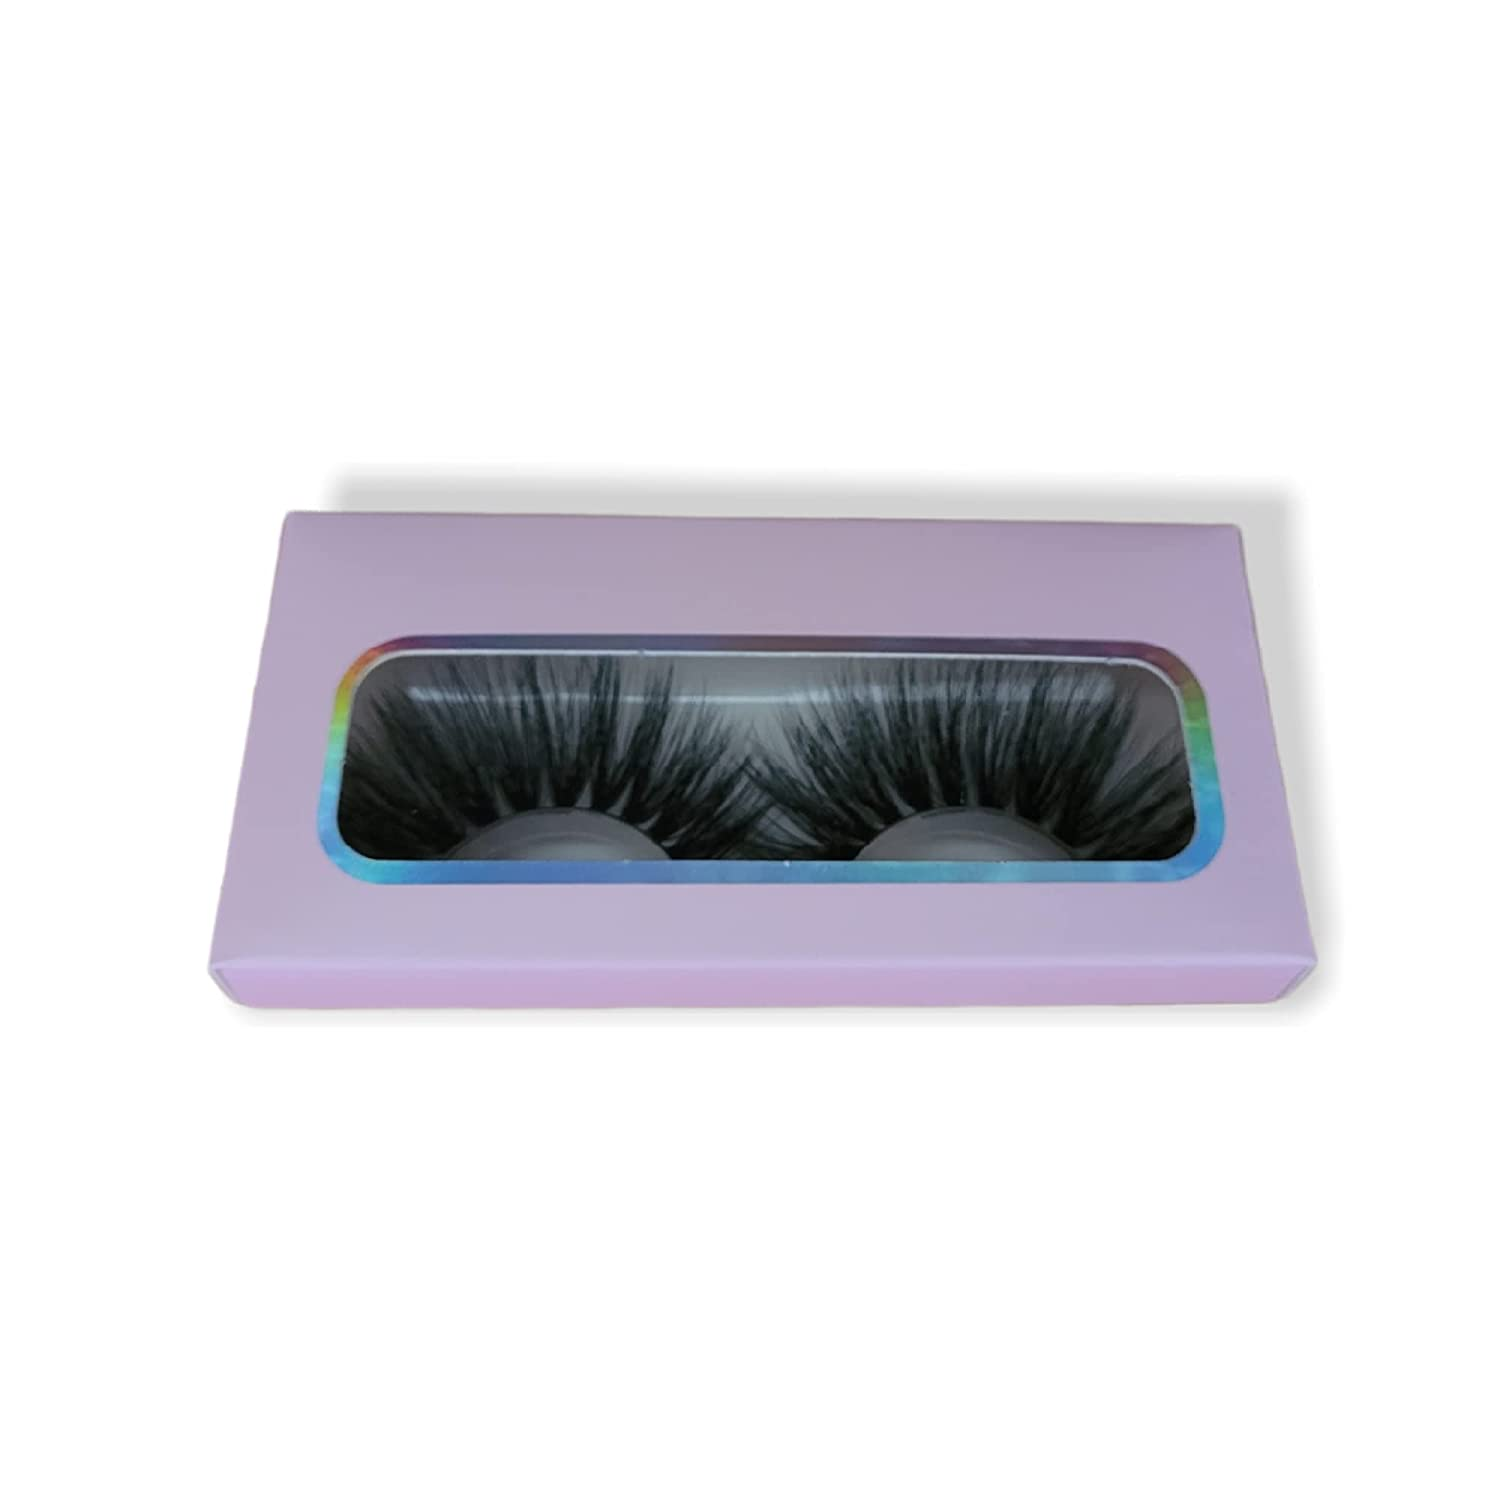 100% Mink Lash Animer and price Max 49% OFF revision